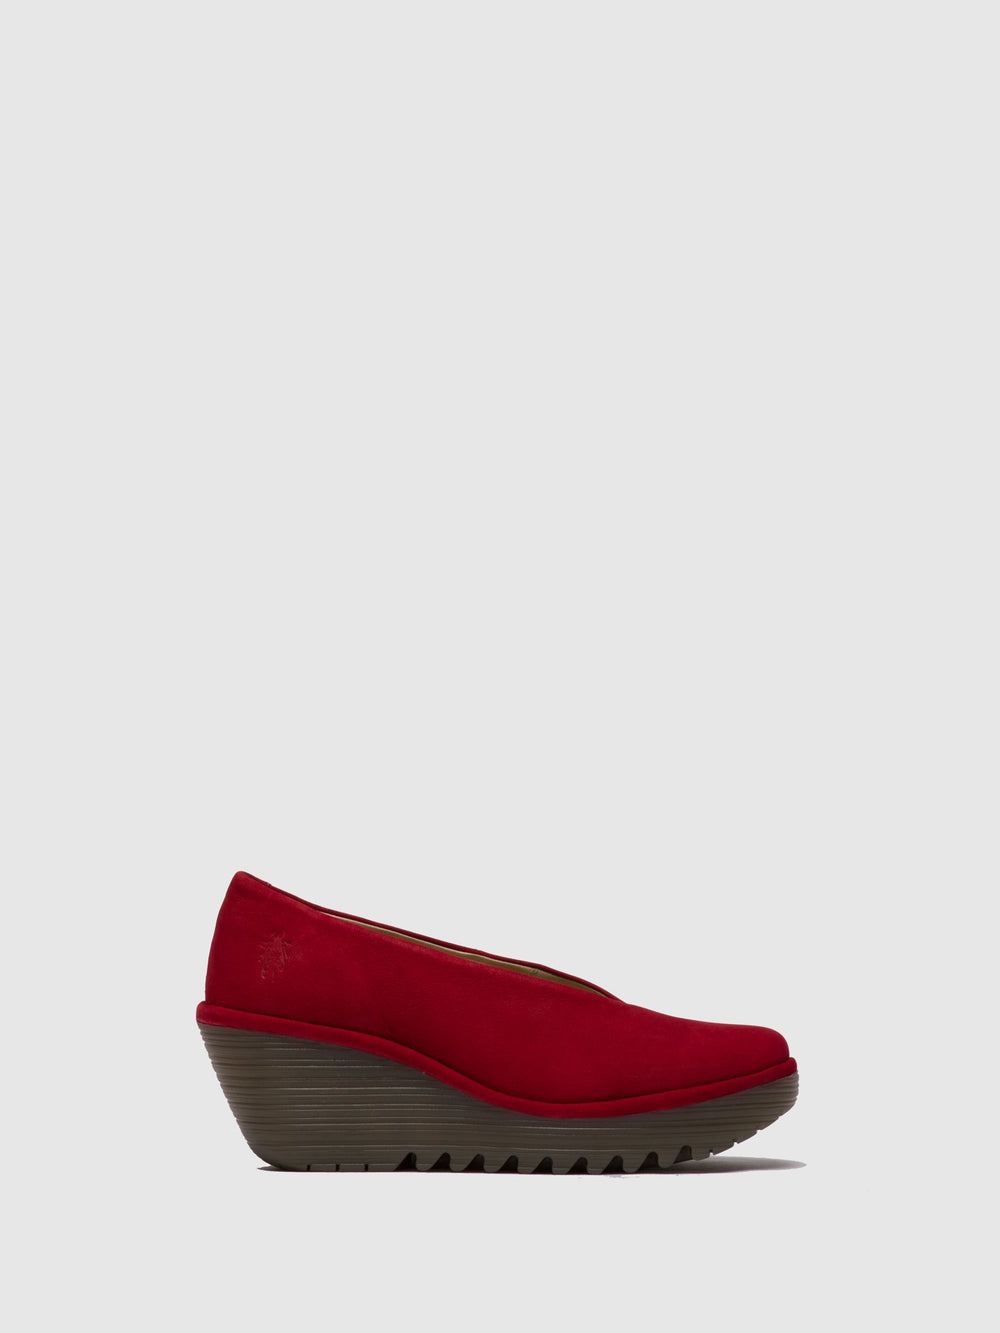 Firebrick Wedge Shoes